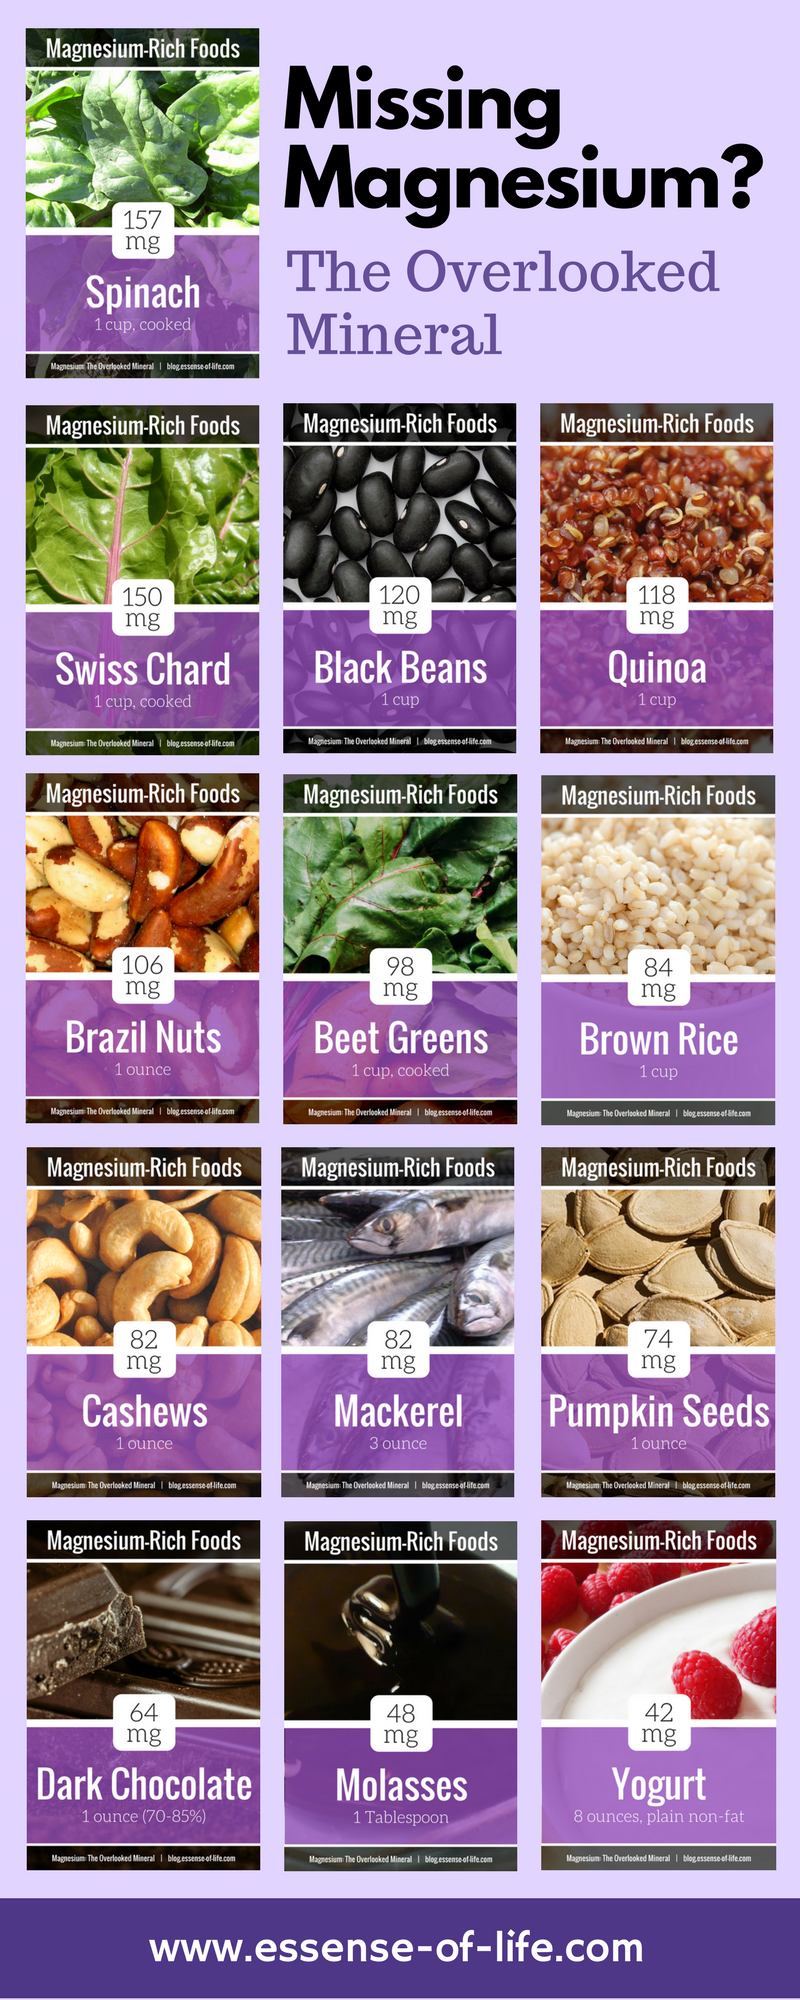 Magnesium: The Overlooked Mineral   The Essential Health Blog